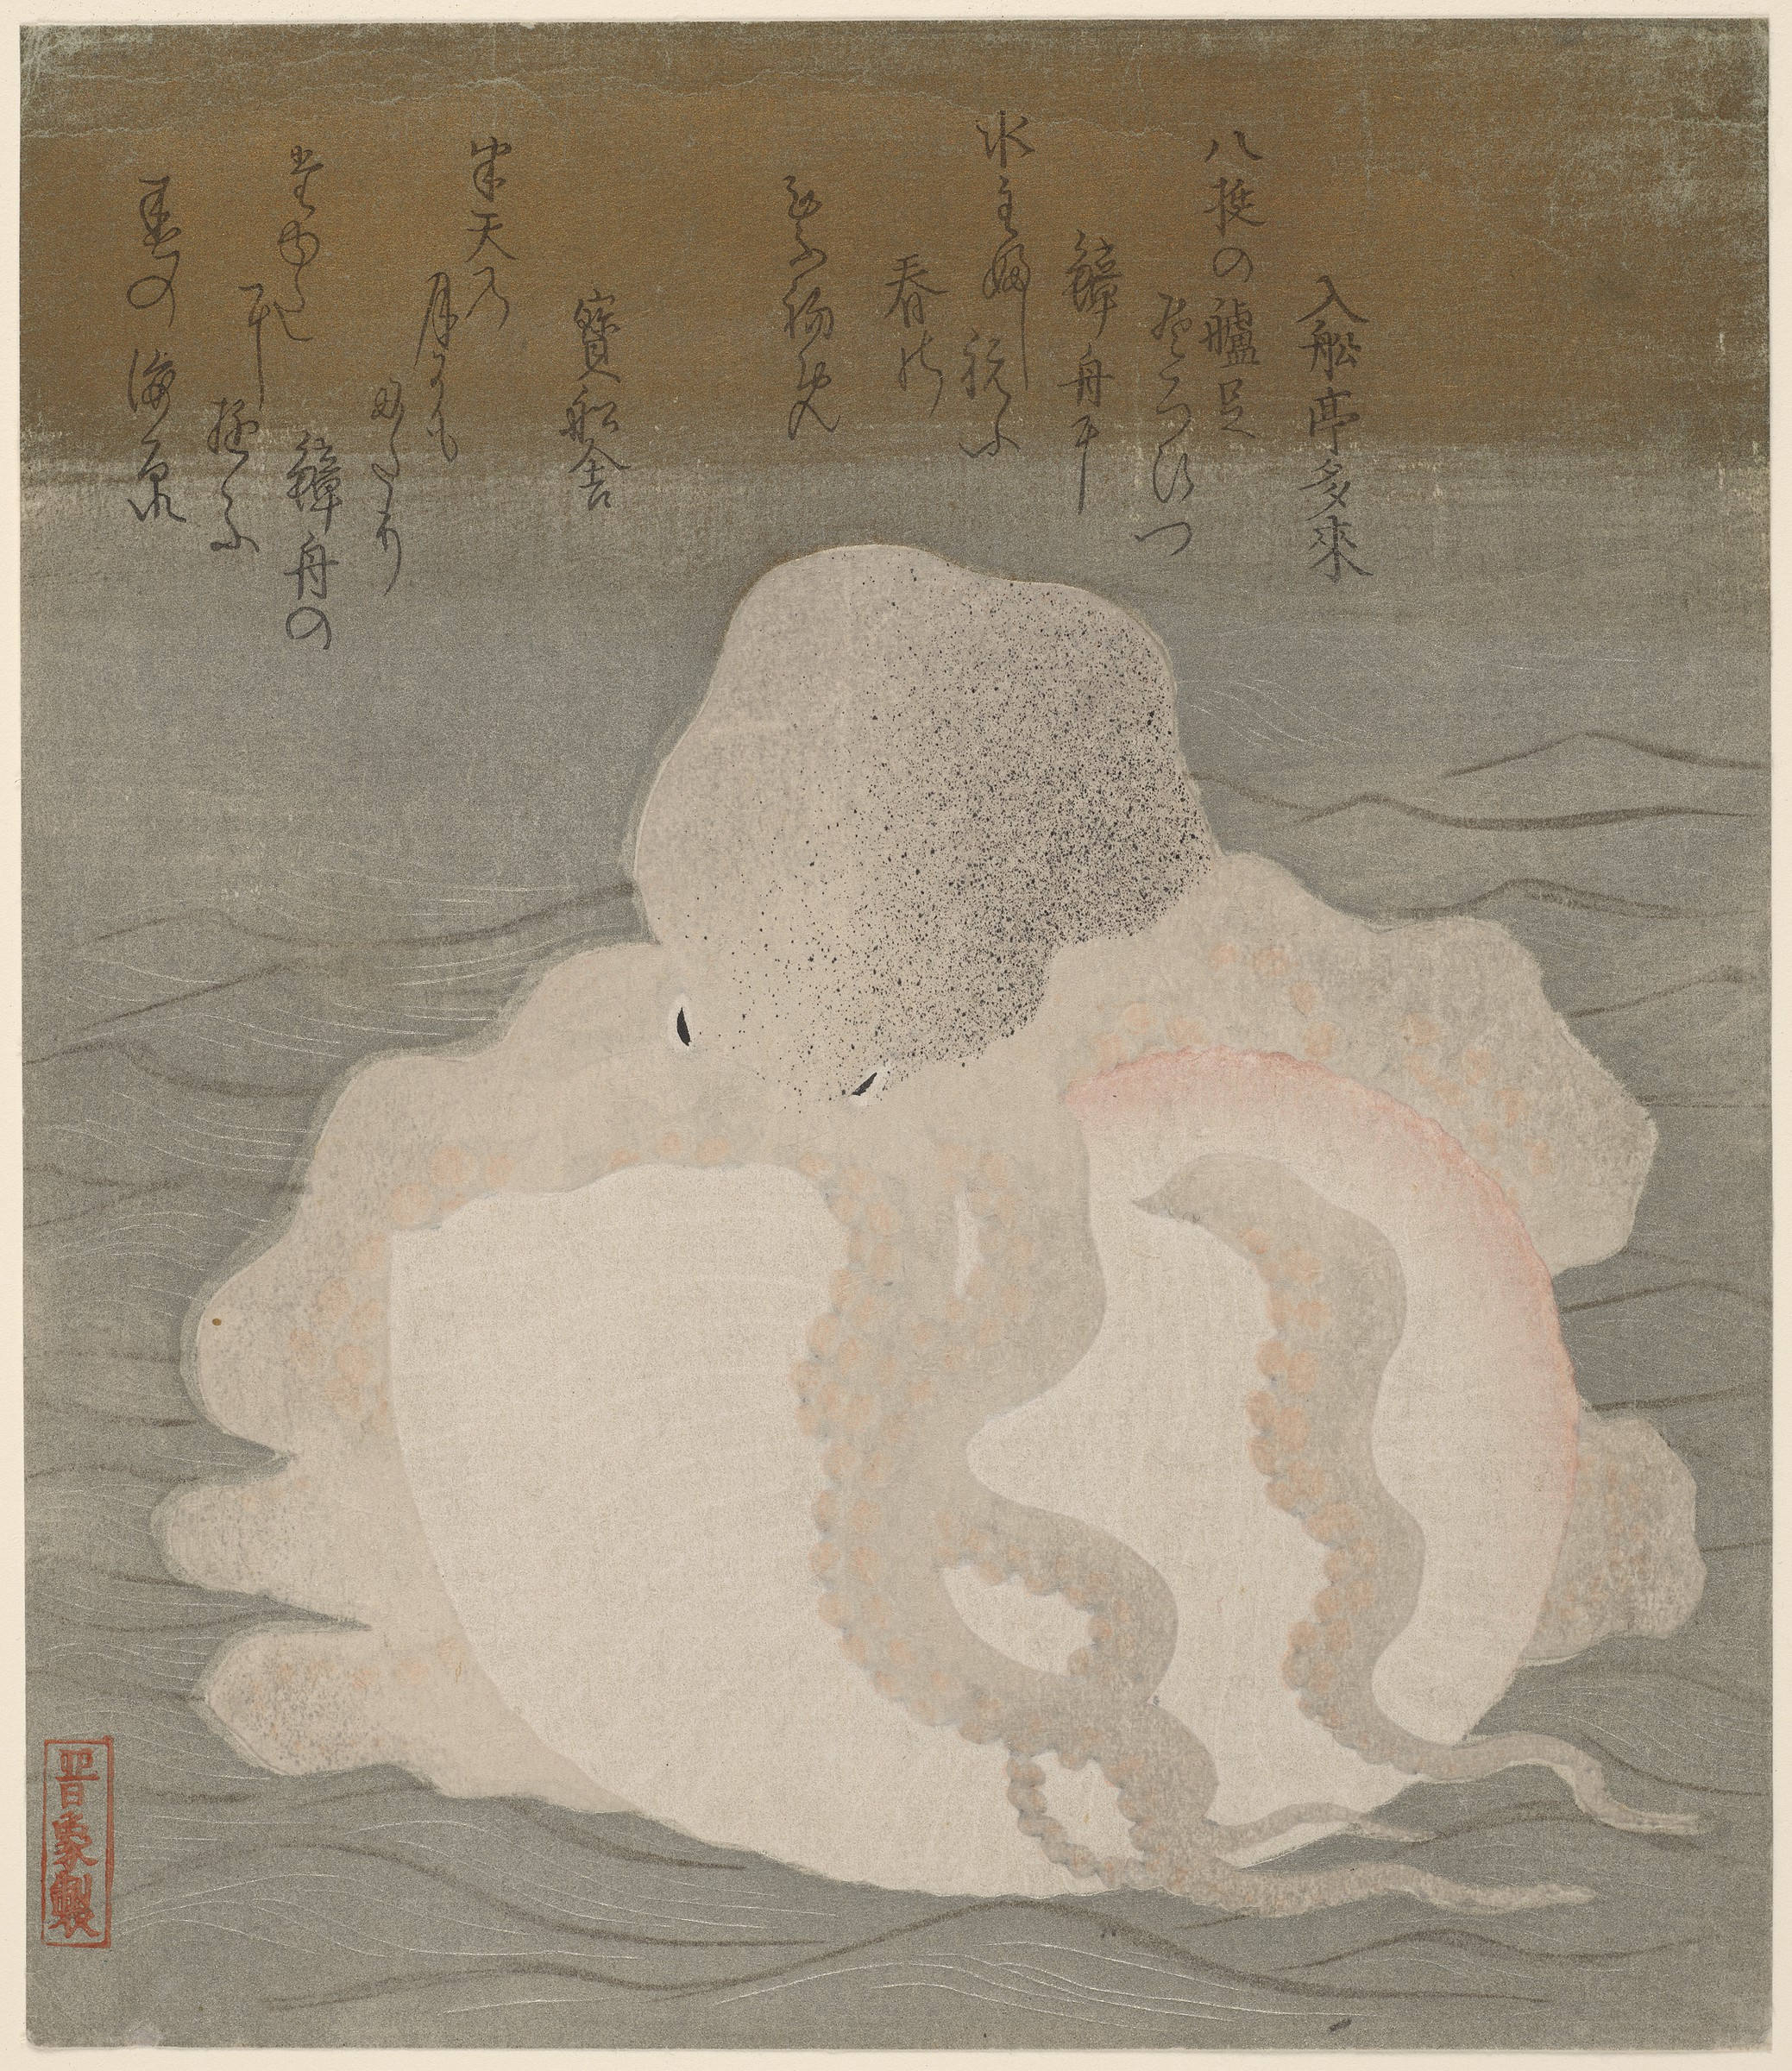 Woodblock print of an octopus curled around a seashell.